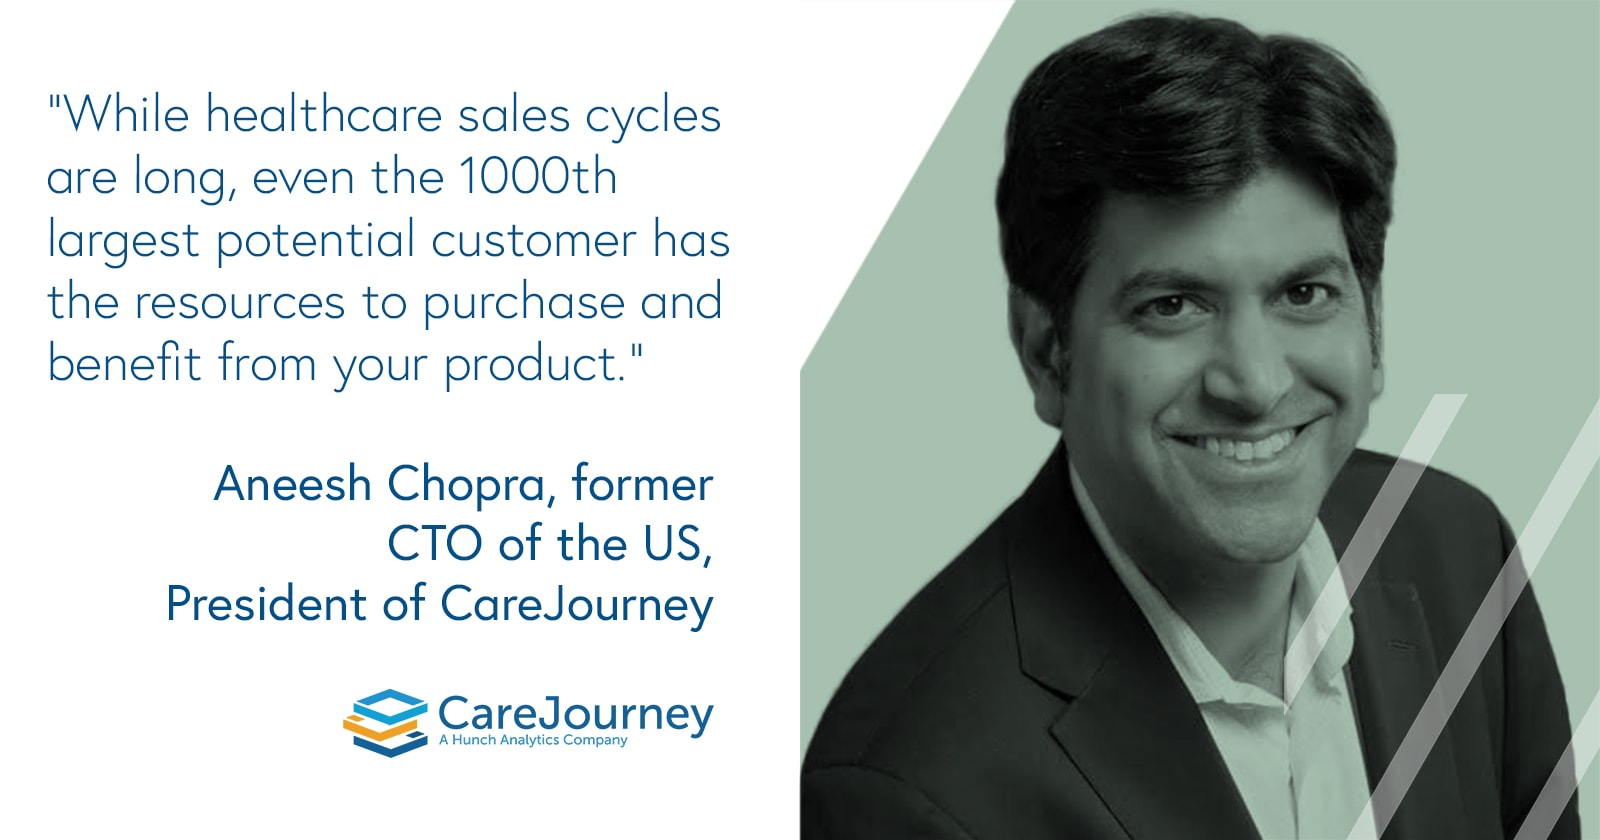 Aneesh Chopra, former CTO of the US, President of CareJourney